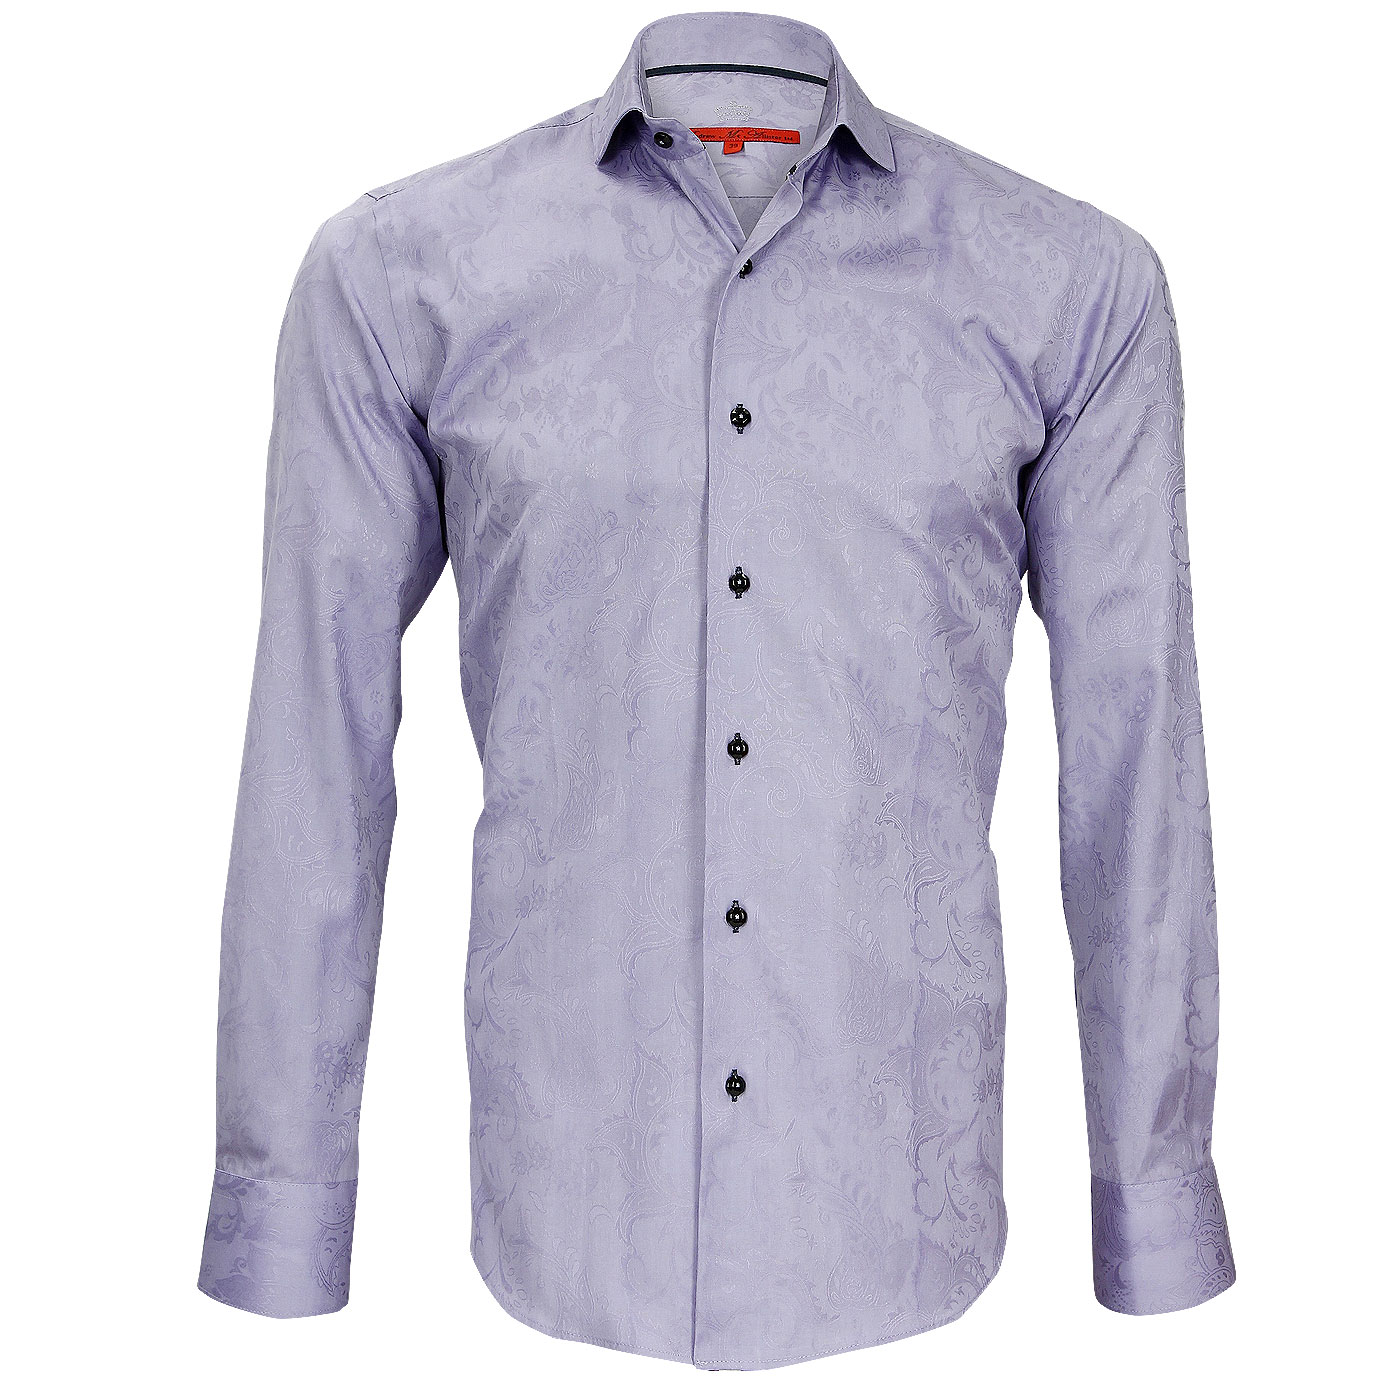 Men's shirt Buy online be Delivered in 48H on webmenshirts.com